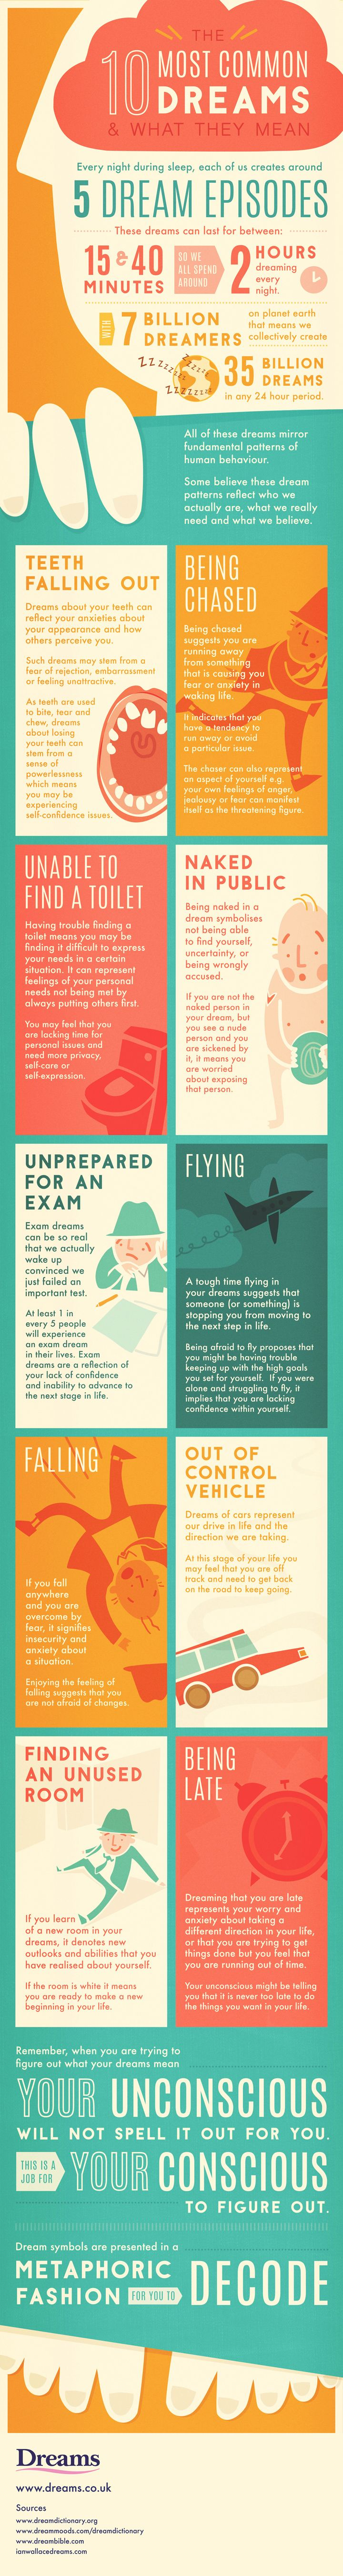 The 10 Most Common Dreams and What They Mean #infographic